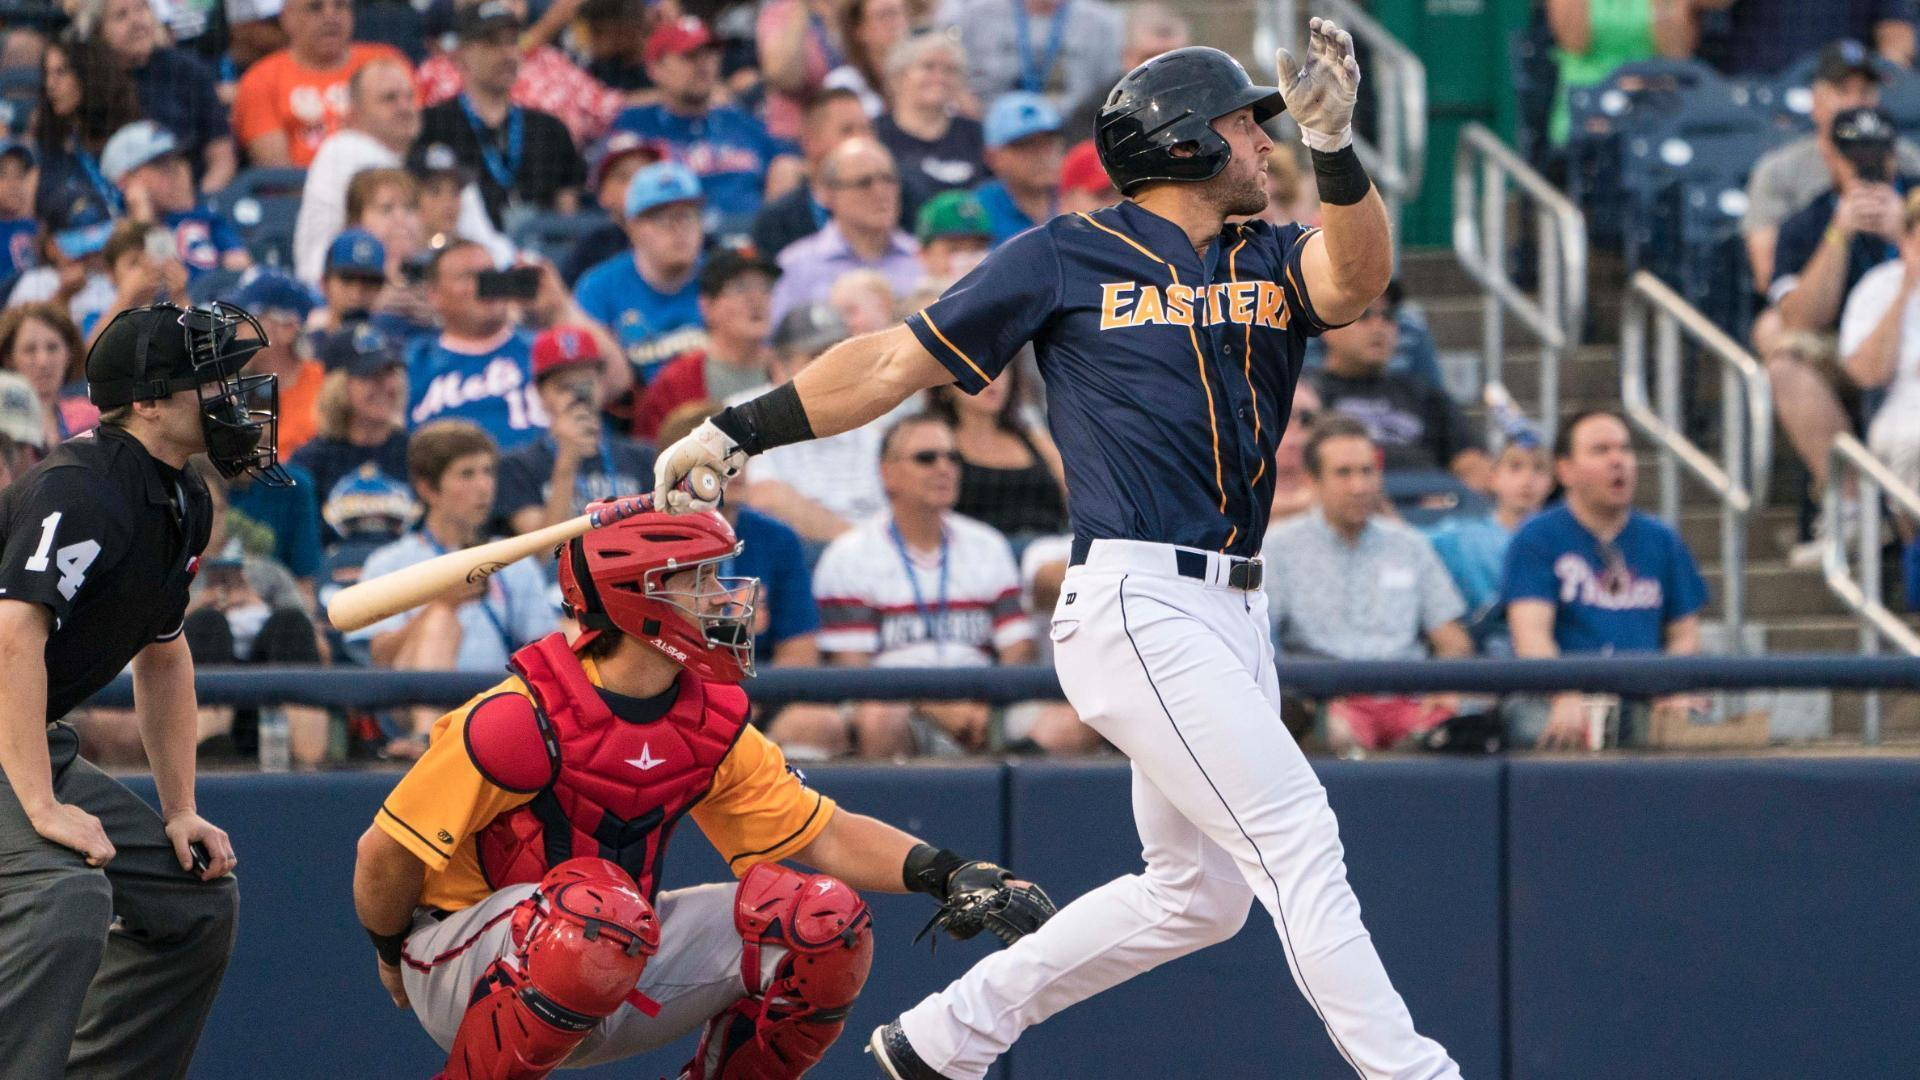 Tebow goes 1-for-4 at All-Star Game